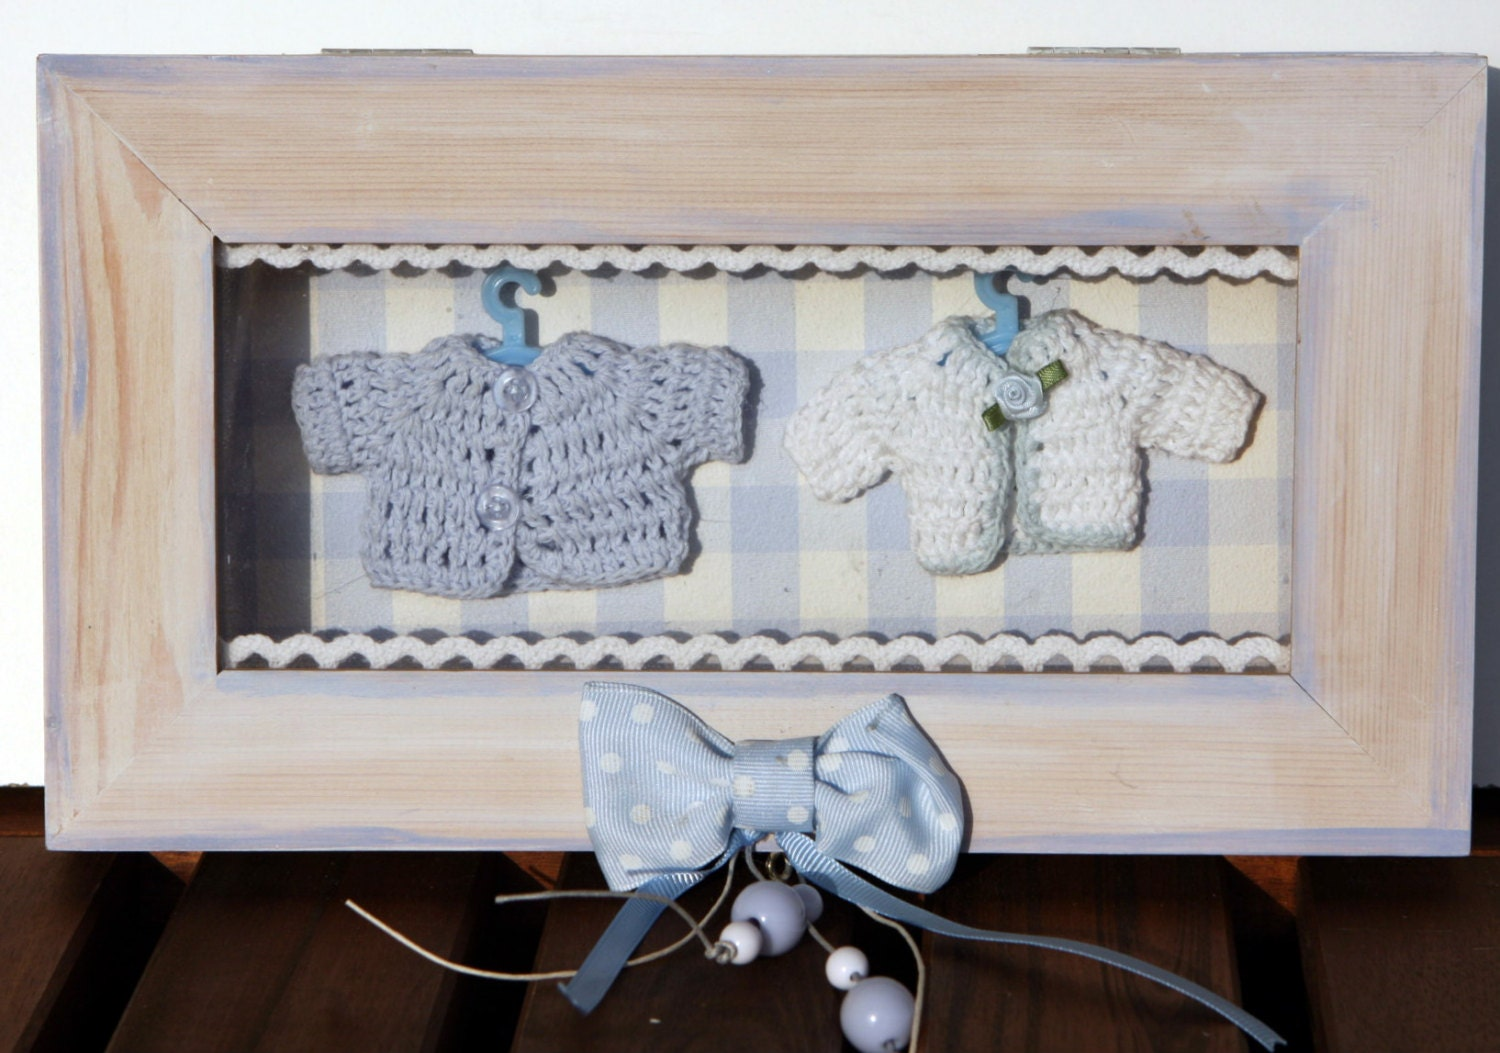 Baby Bedroom In A Box Special: Wooden Shadow Box Baby Boy Nursery-Baby Room Wall Decor-Baby